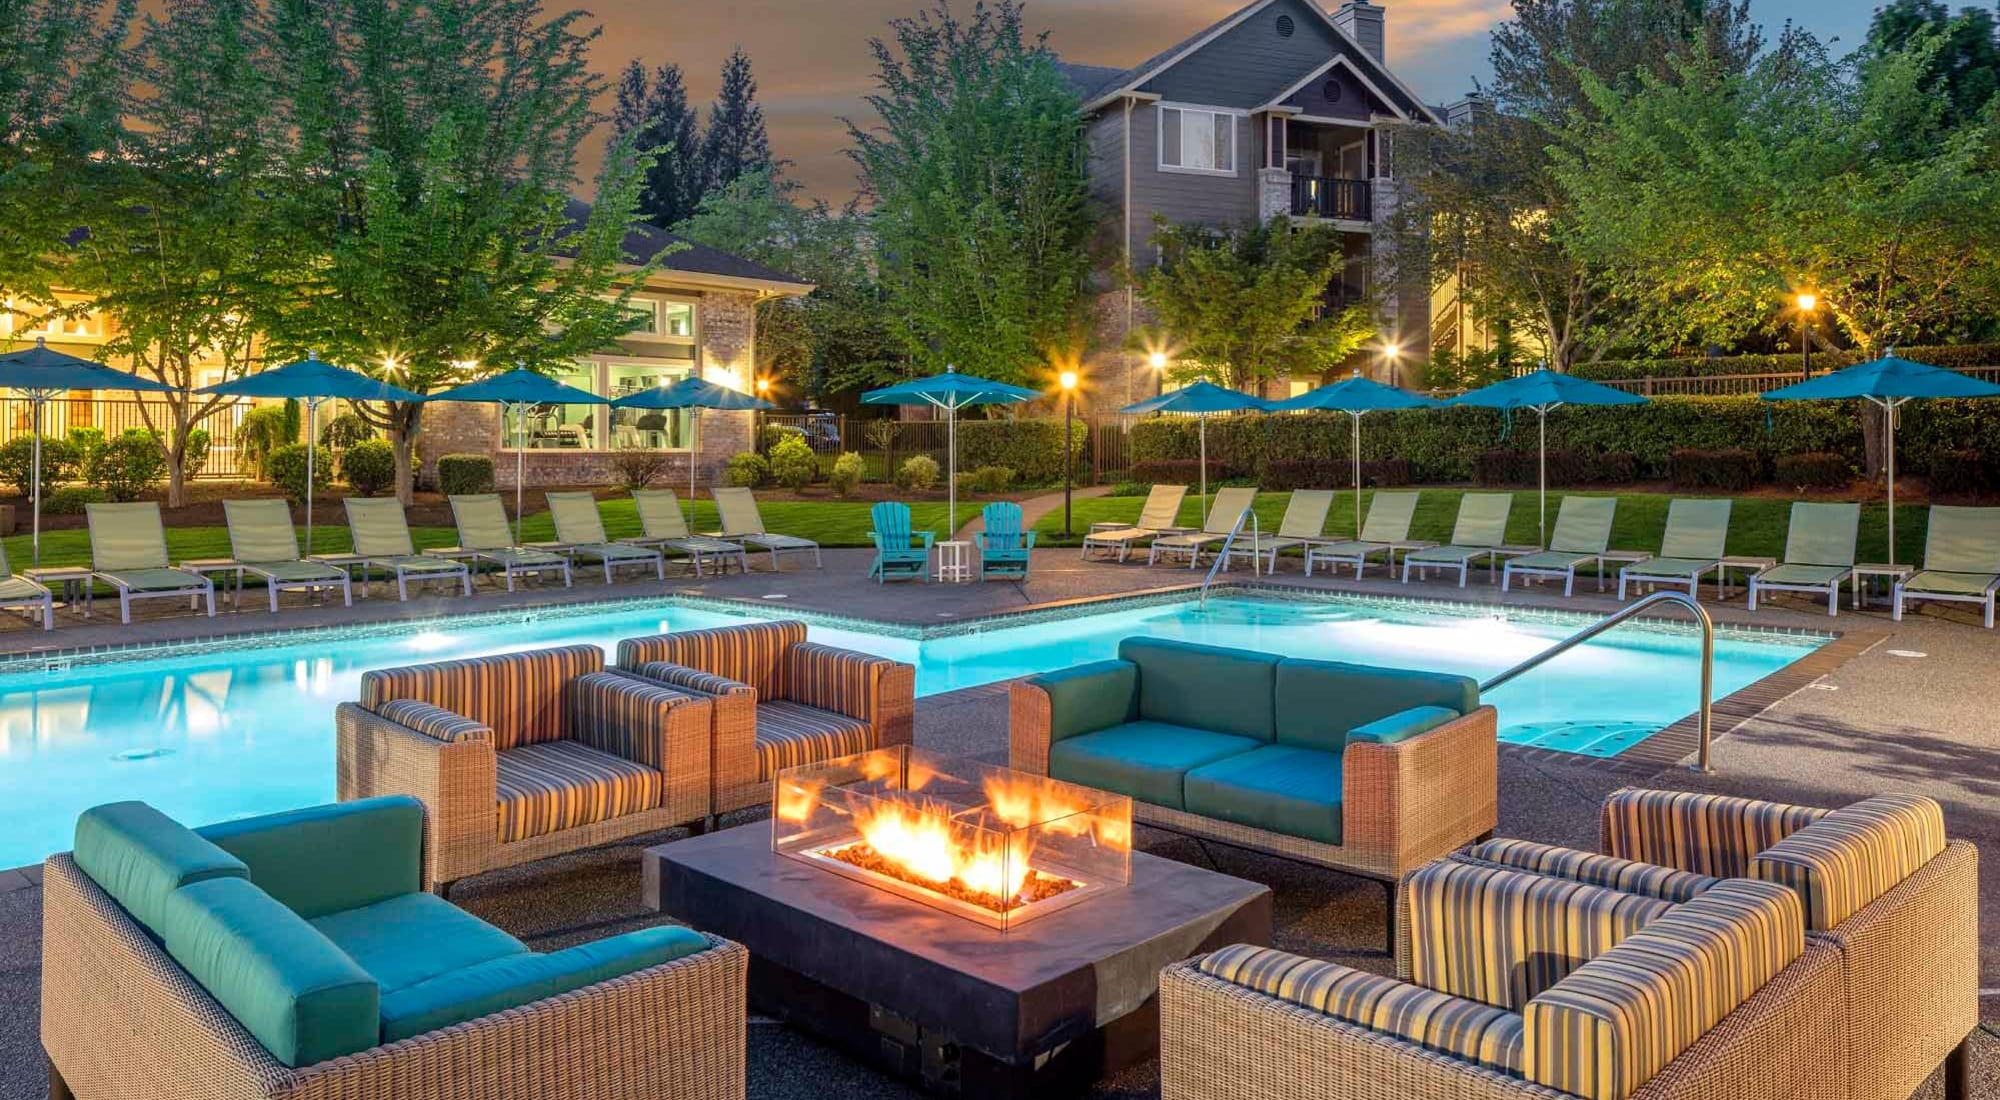 The Grove at Orenco Station features a relaxing pool and fire pit, in Hillsboro, Oregon